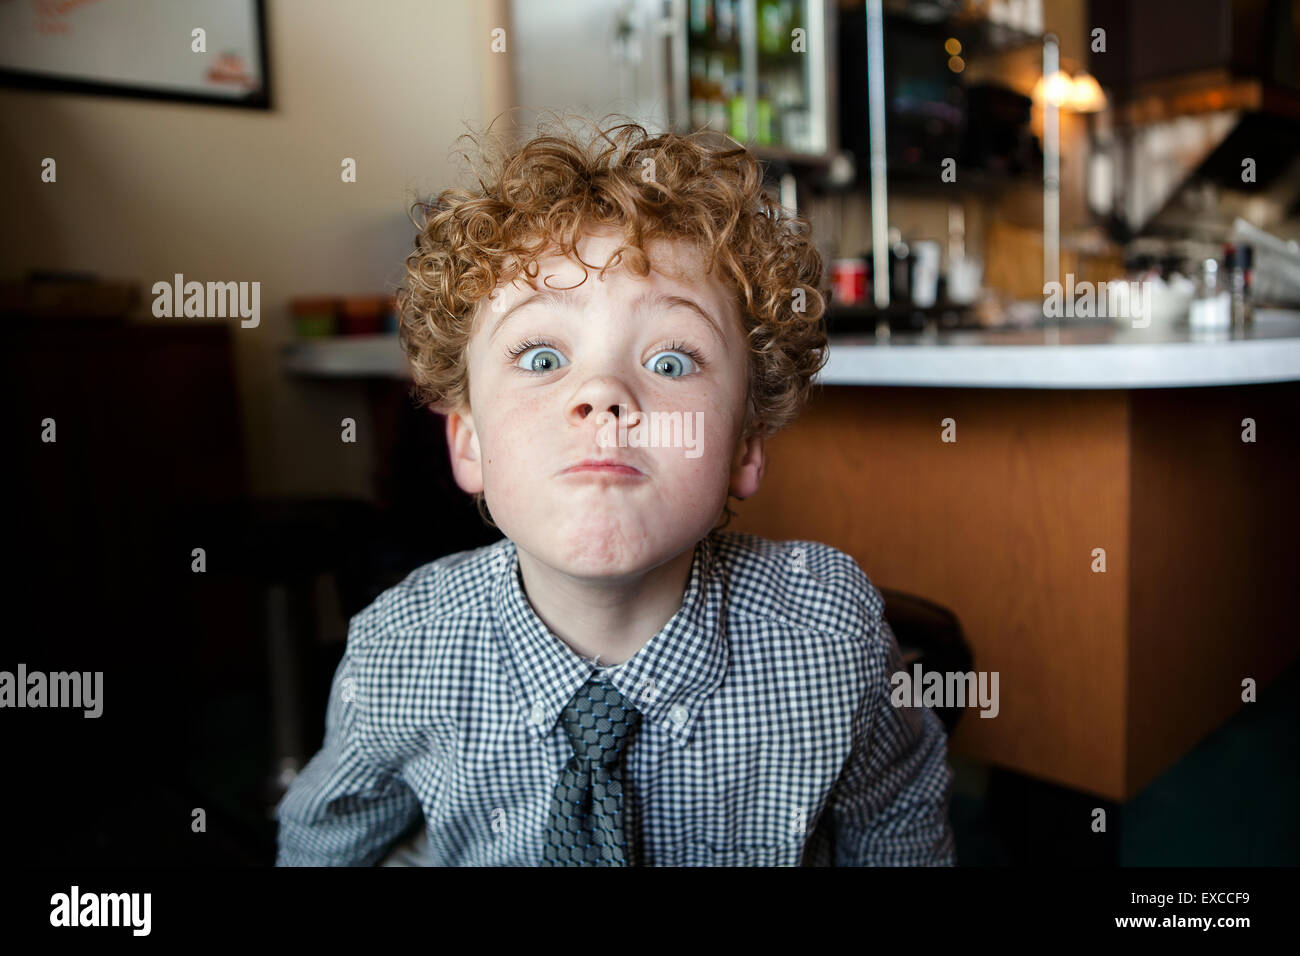 A 6 year old boy wearing a dress shirt and tie making a goofy face - Stock Image